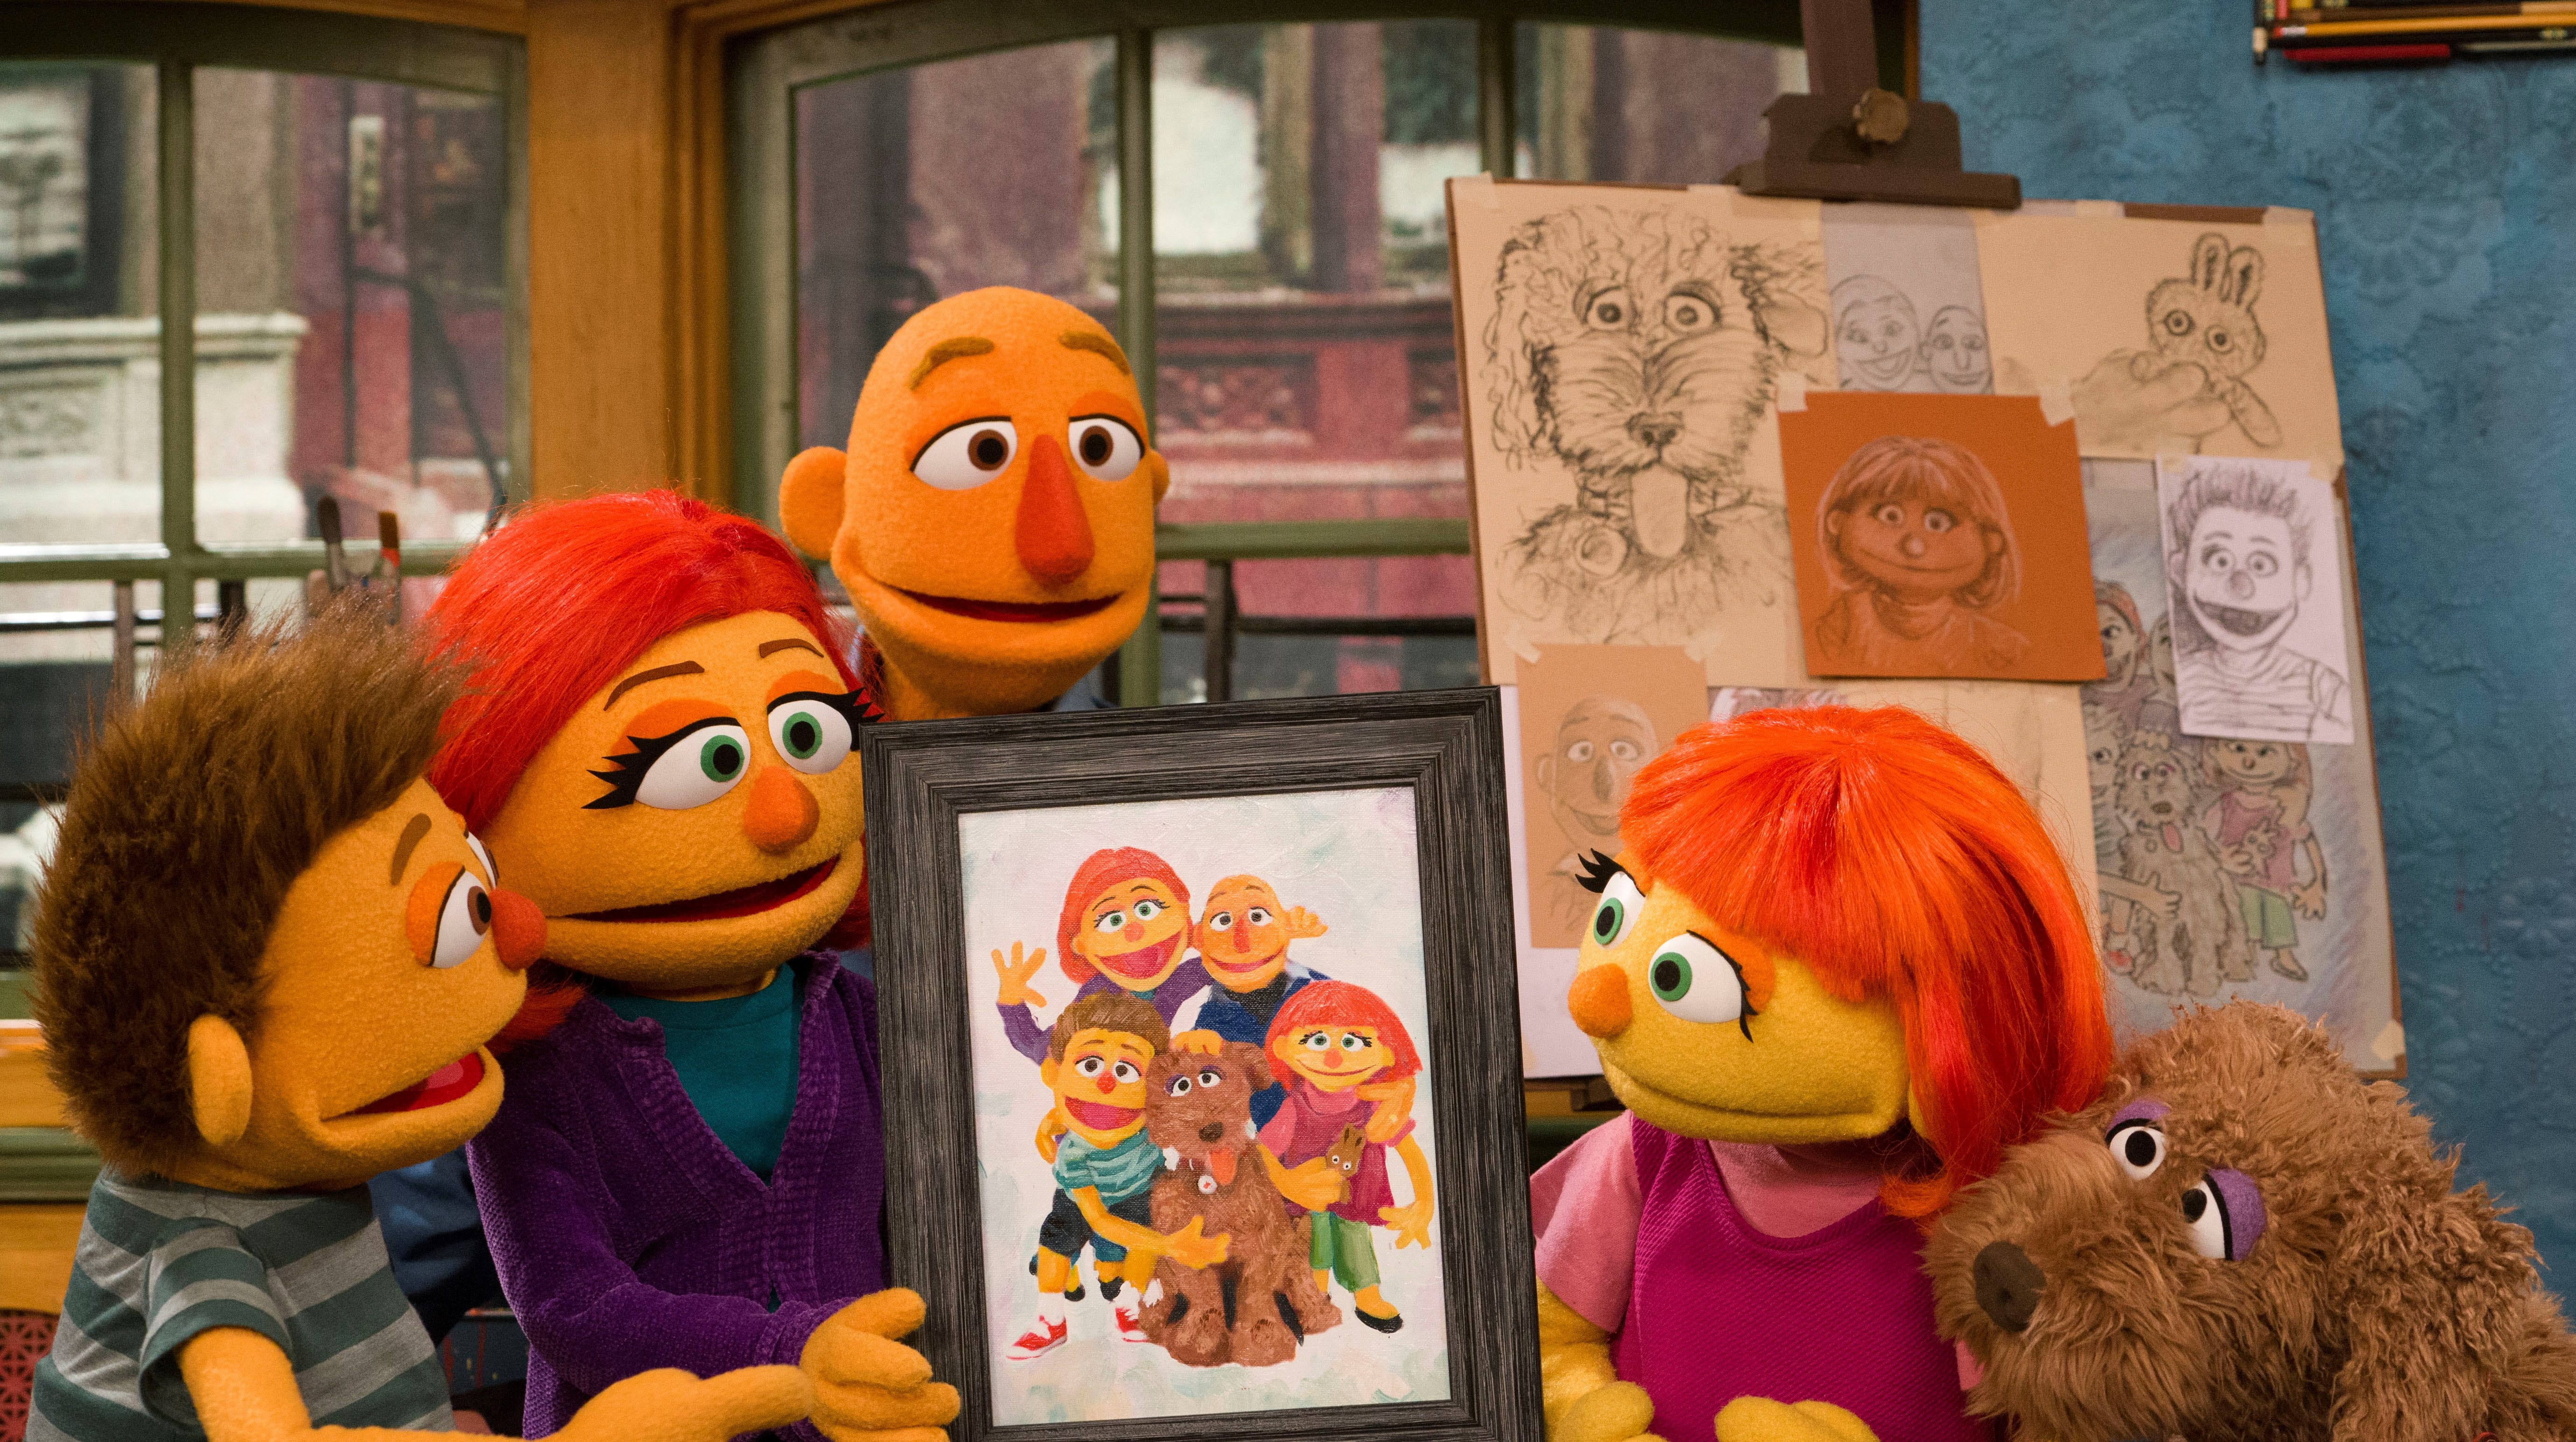 Julia is Sesame Street's first character with autism. Now we meet her family